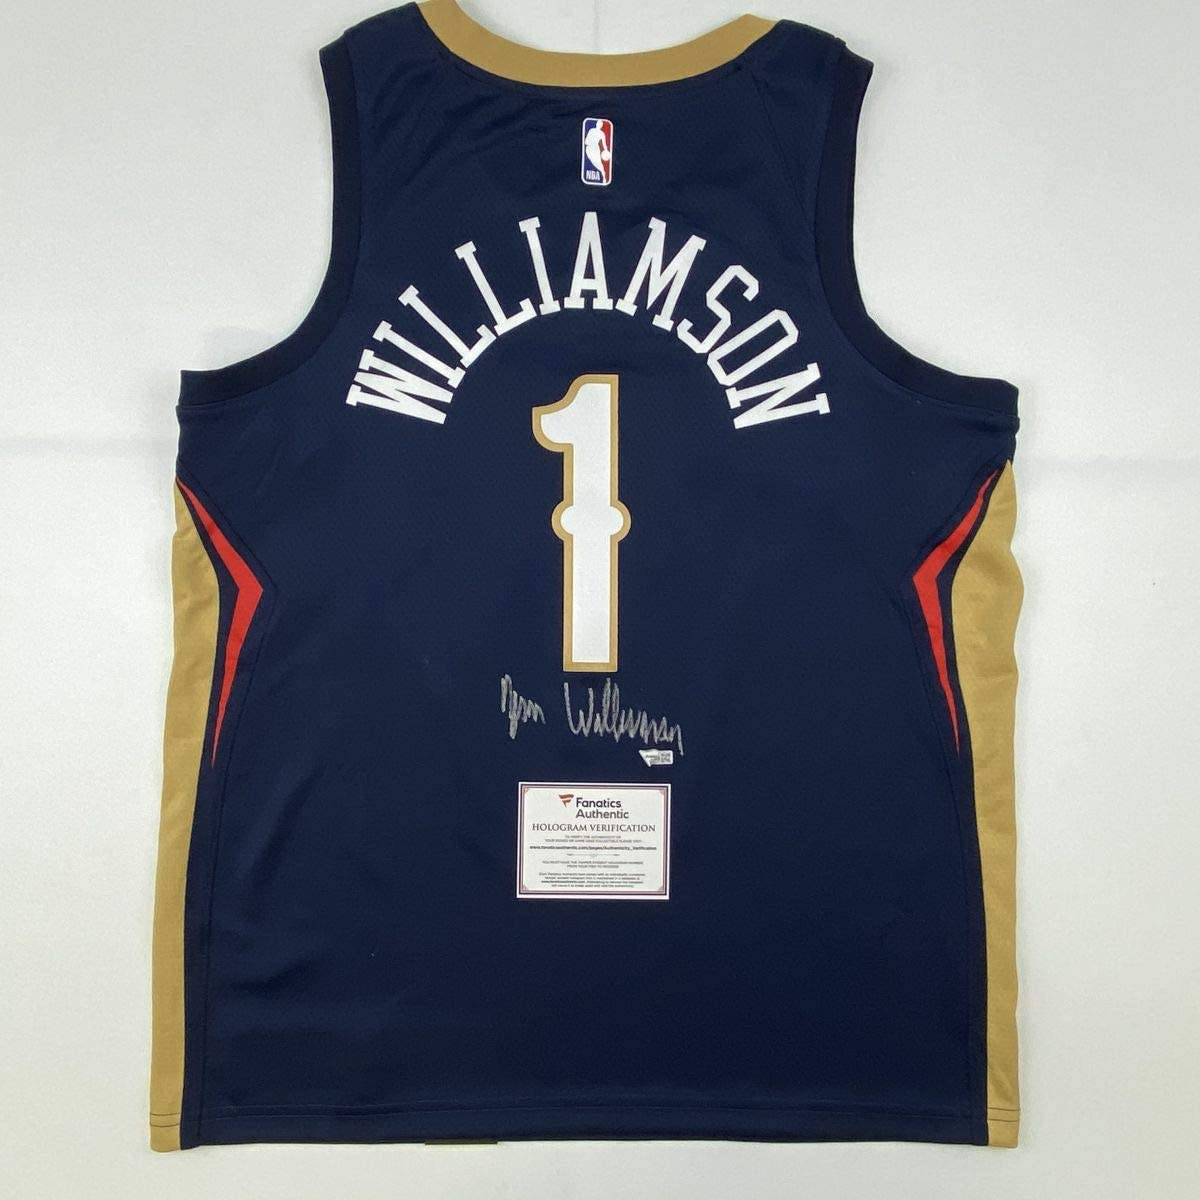 Autographed/Signed Zion Williamson New Orleans Pelicans Blue Swingman Nike Basketball Jersey Fanatics COA